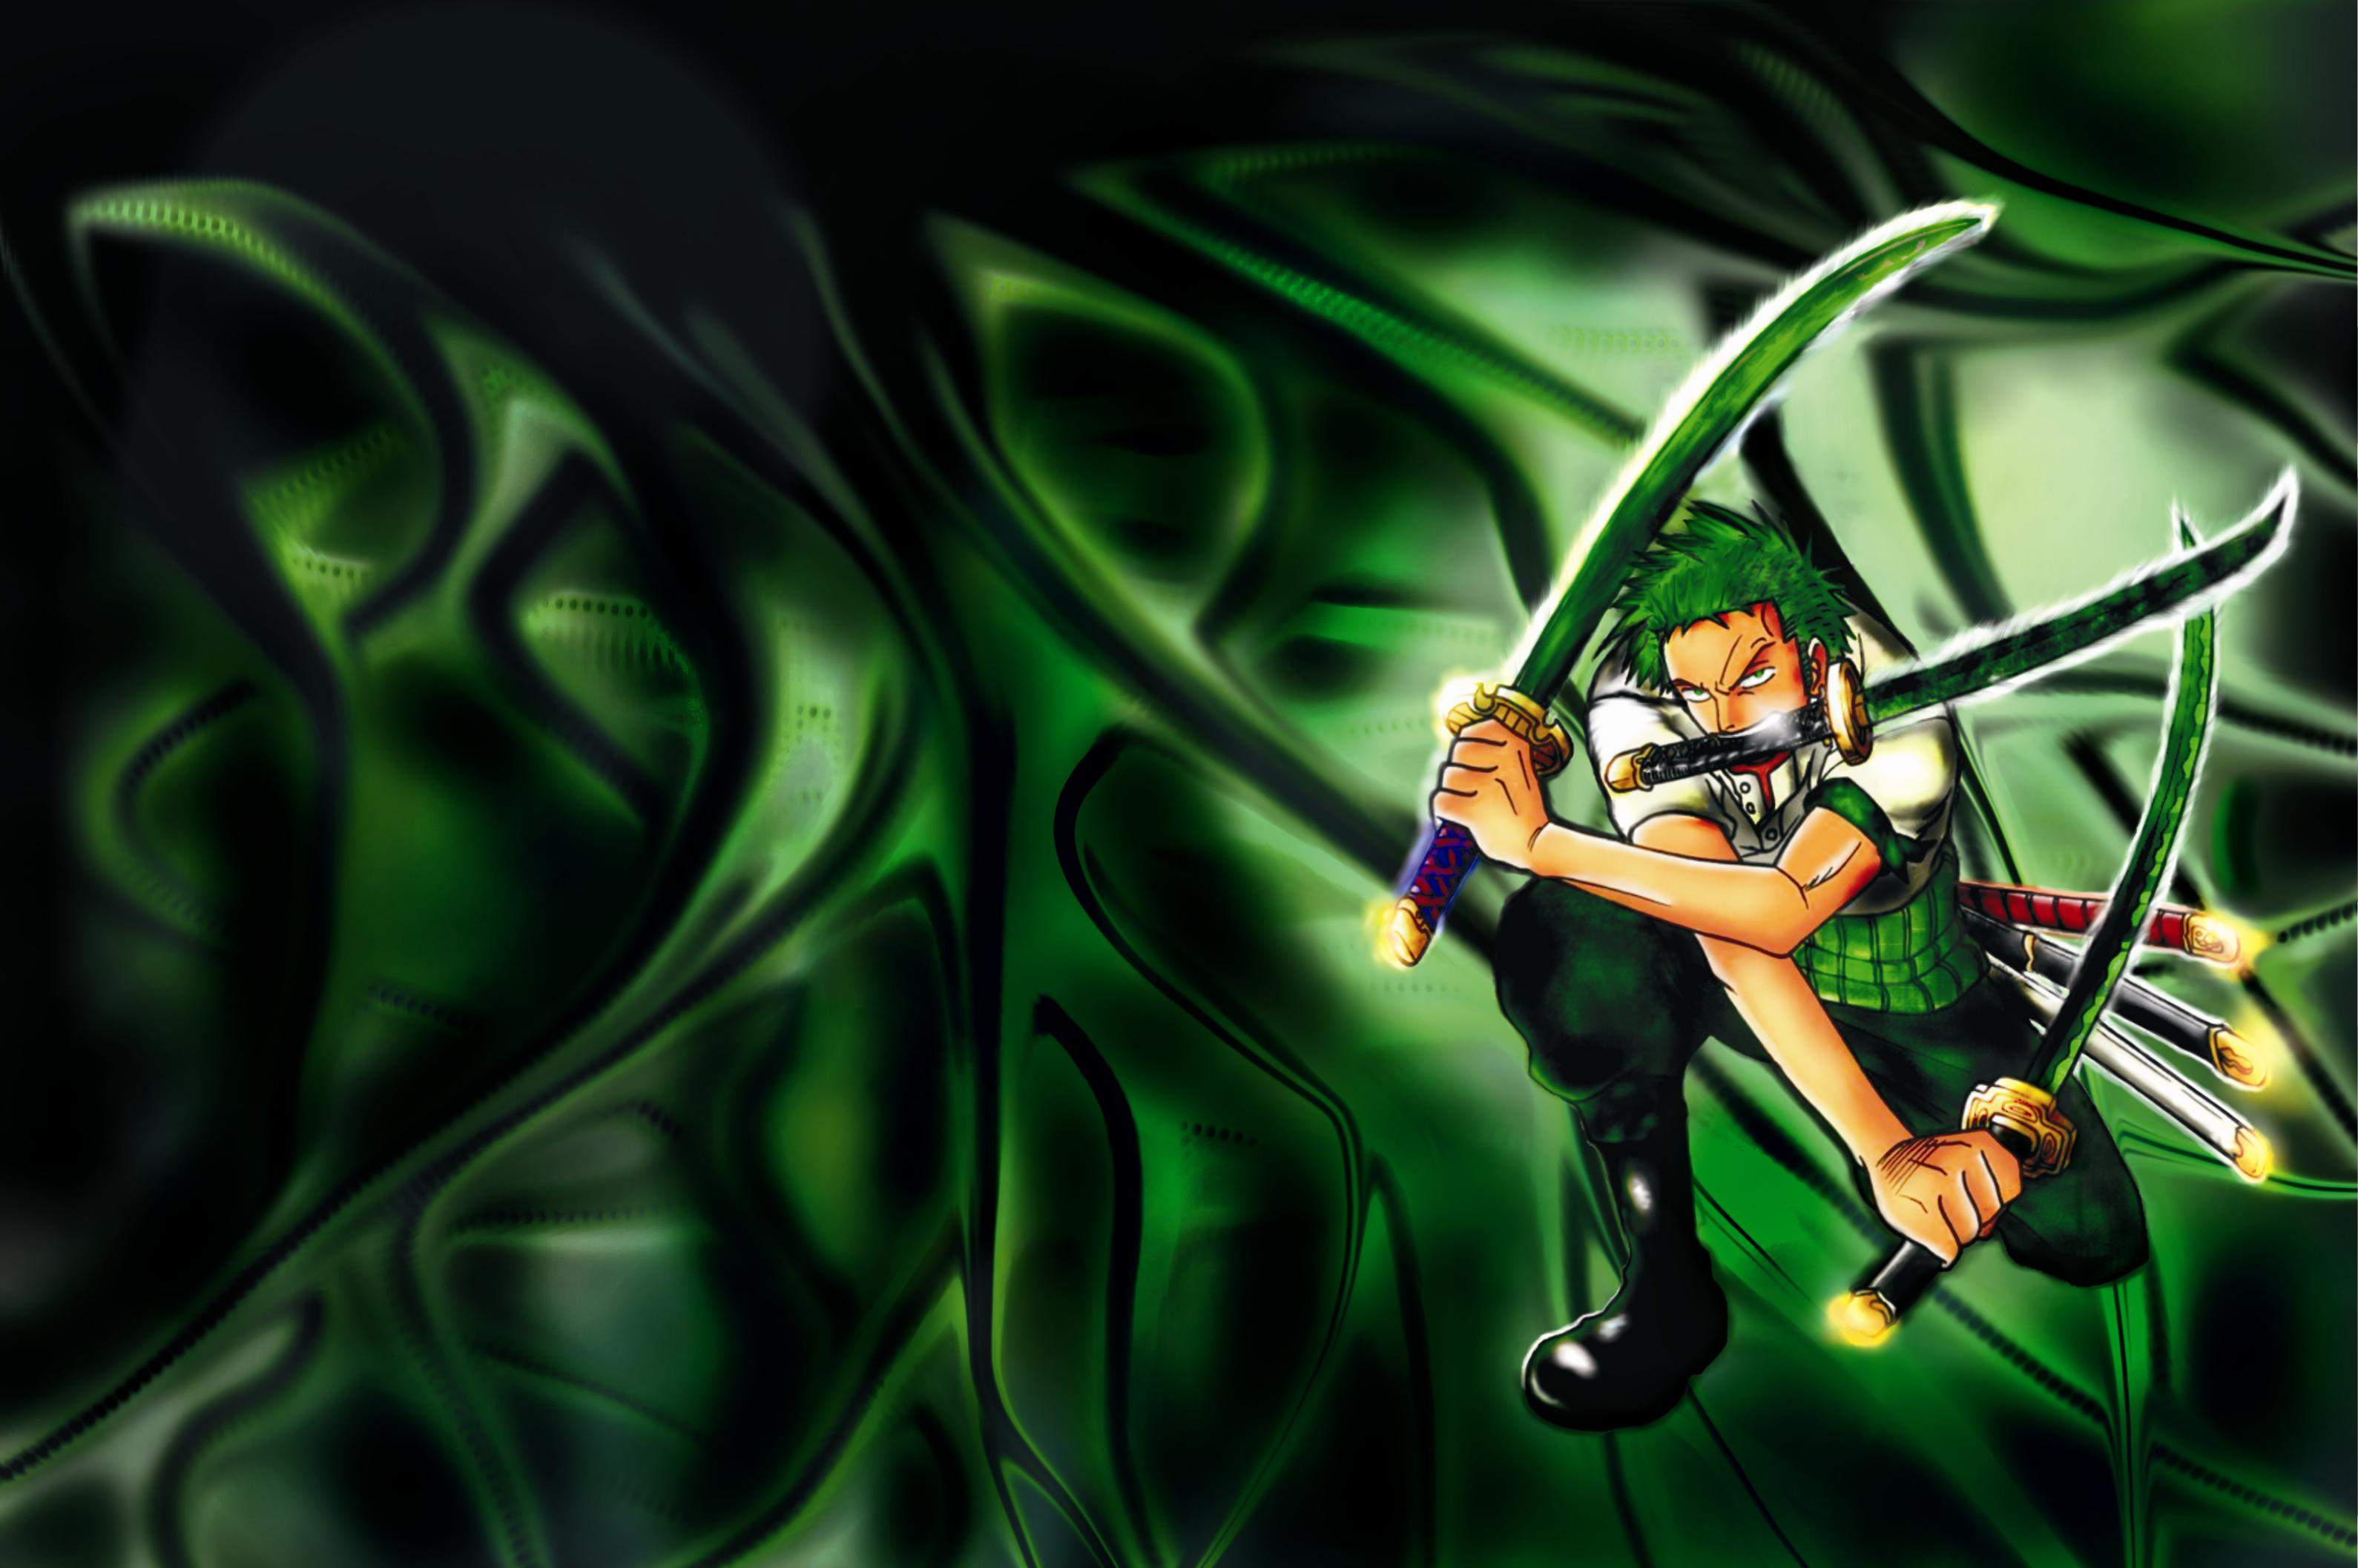 Zoro E Piece Wallpapers HD Wallpaper